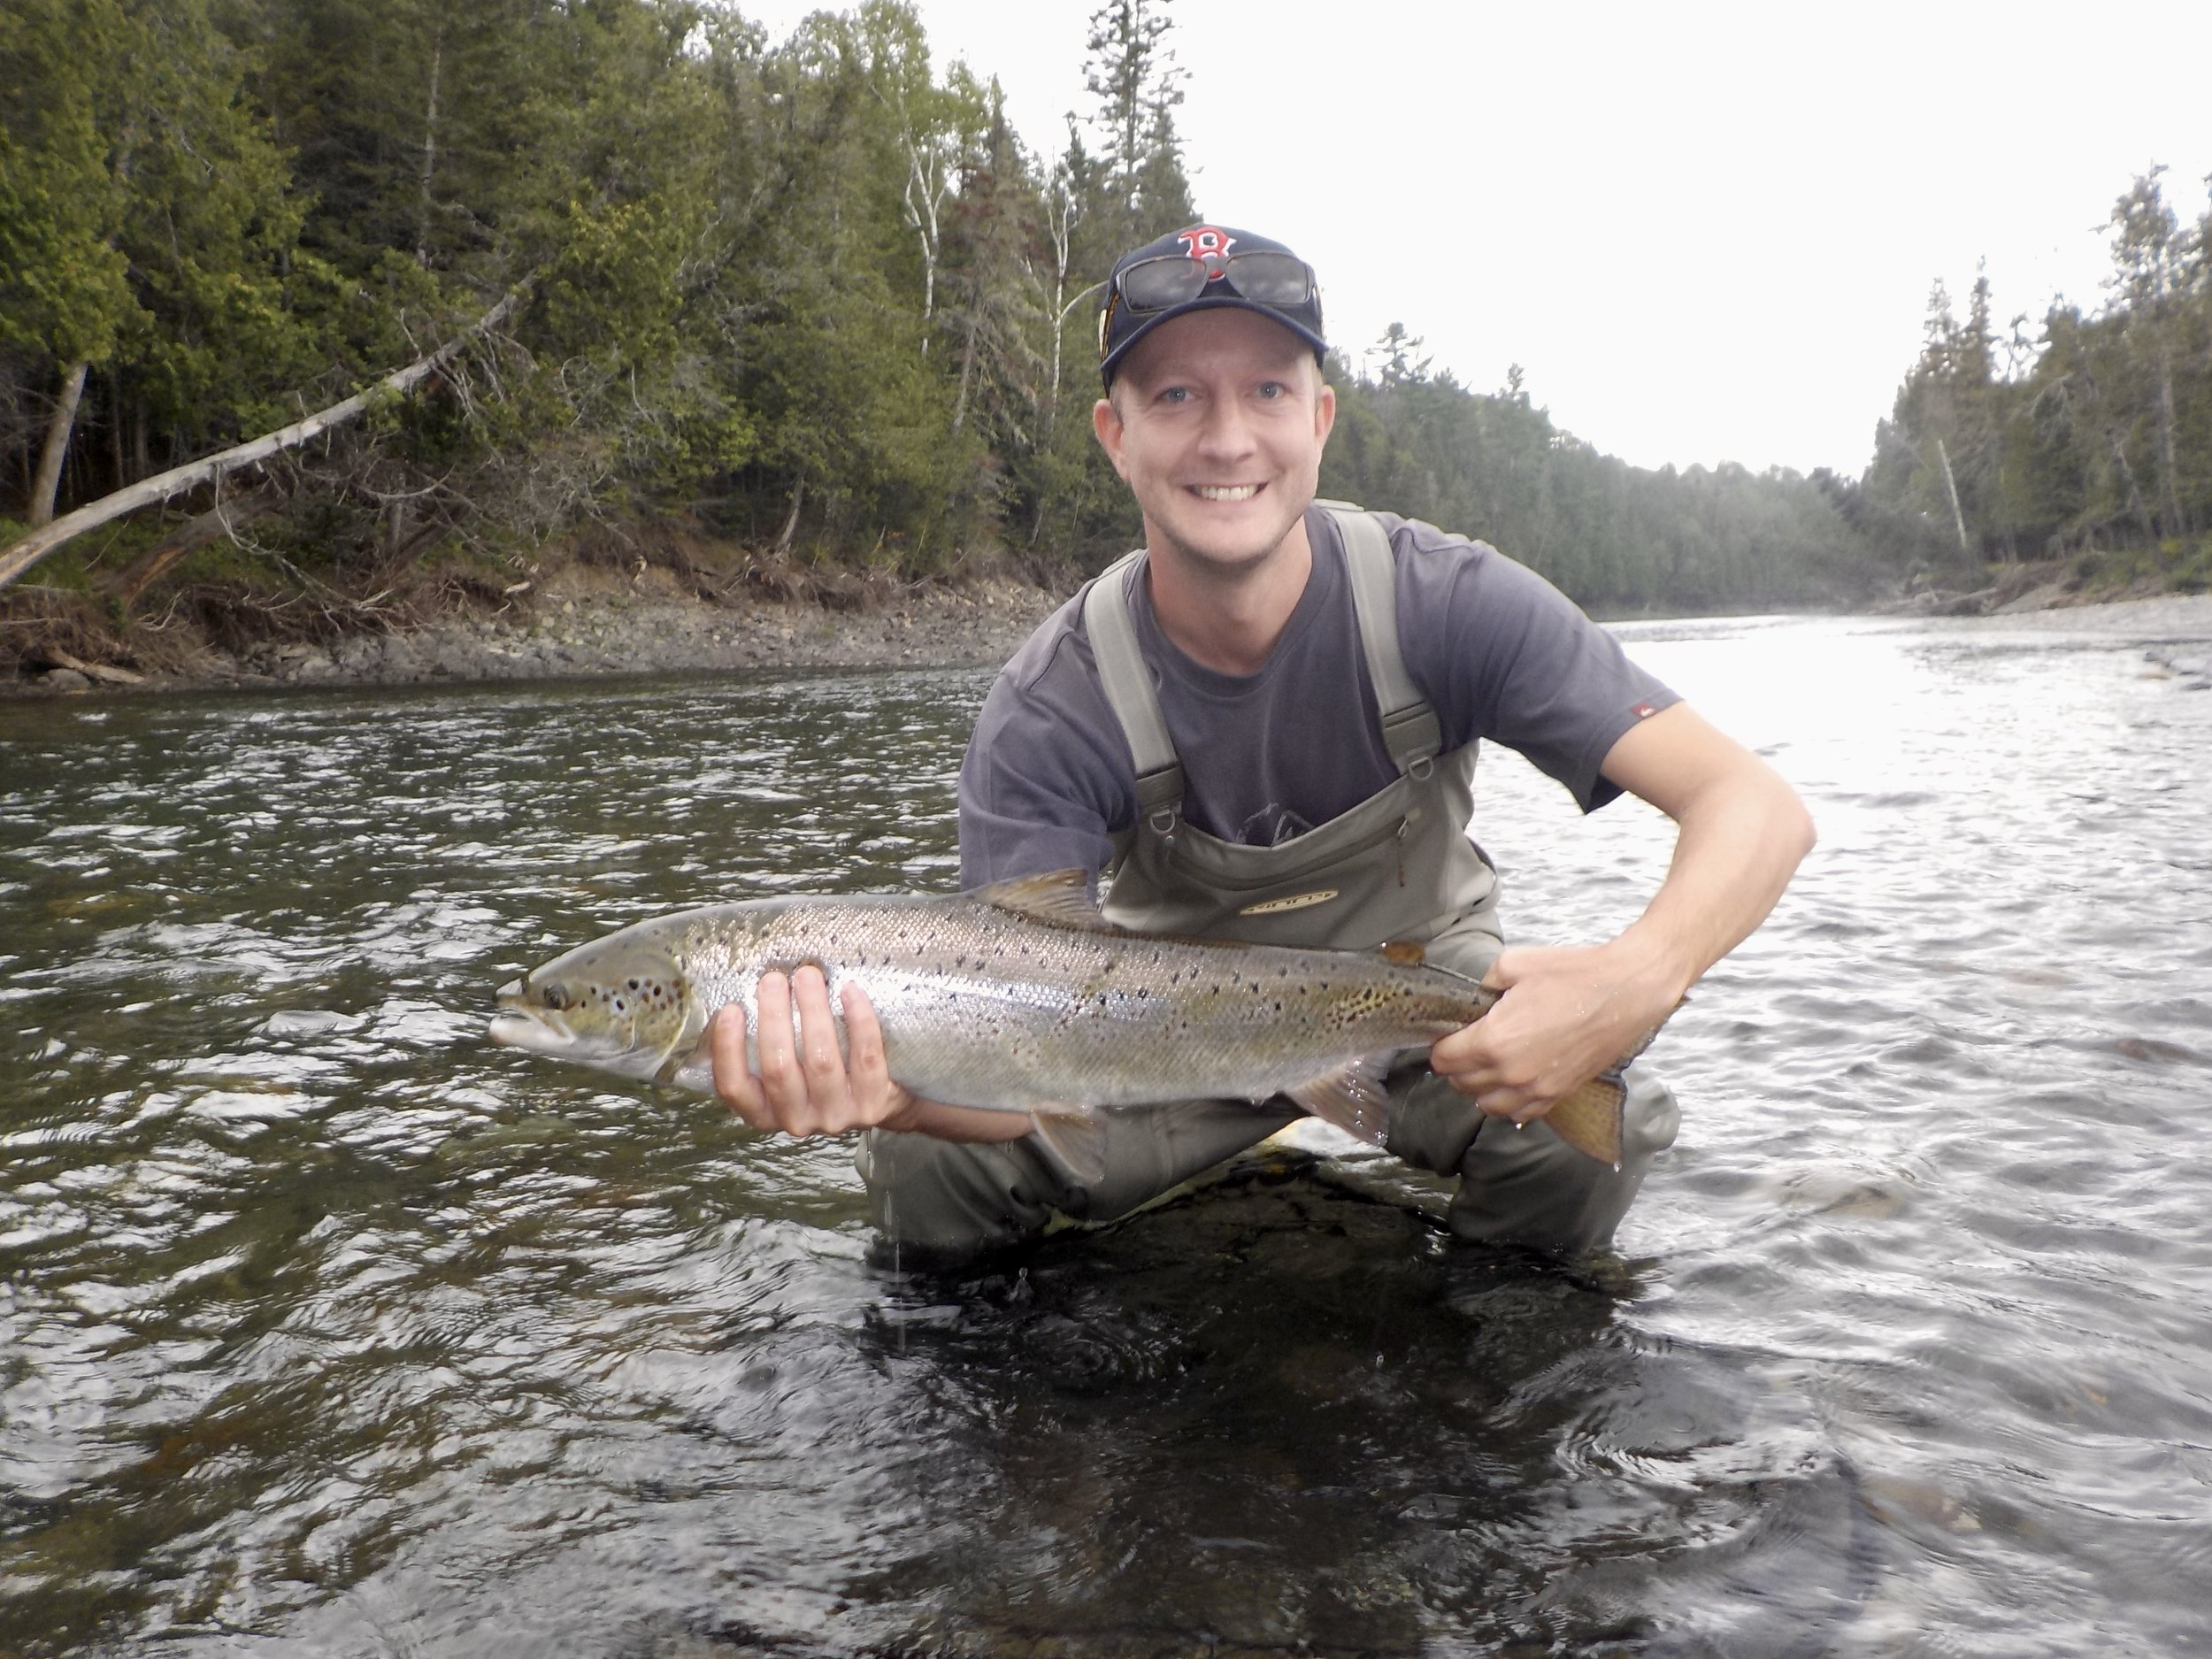 Michael Herfs visits Camp Bonaventure for the first time! What a great salmon he got to release back into the Petite!